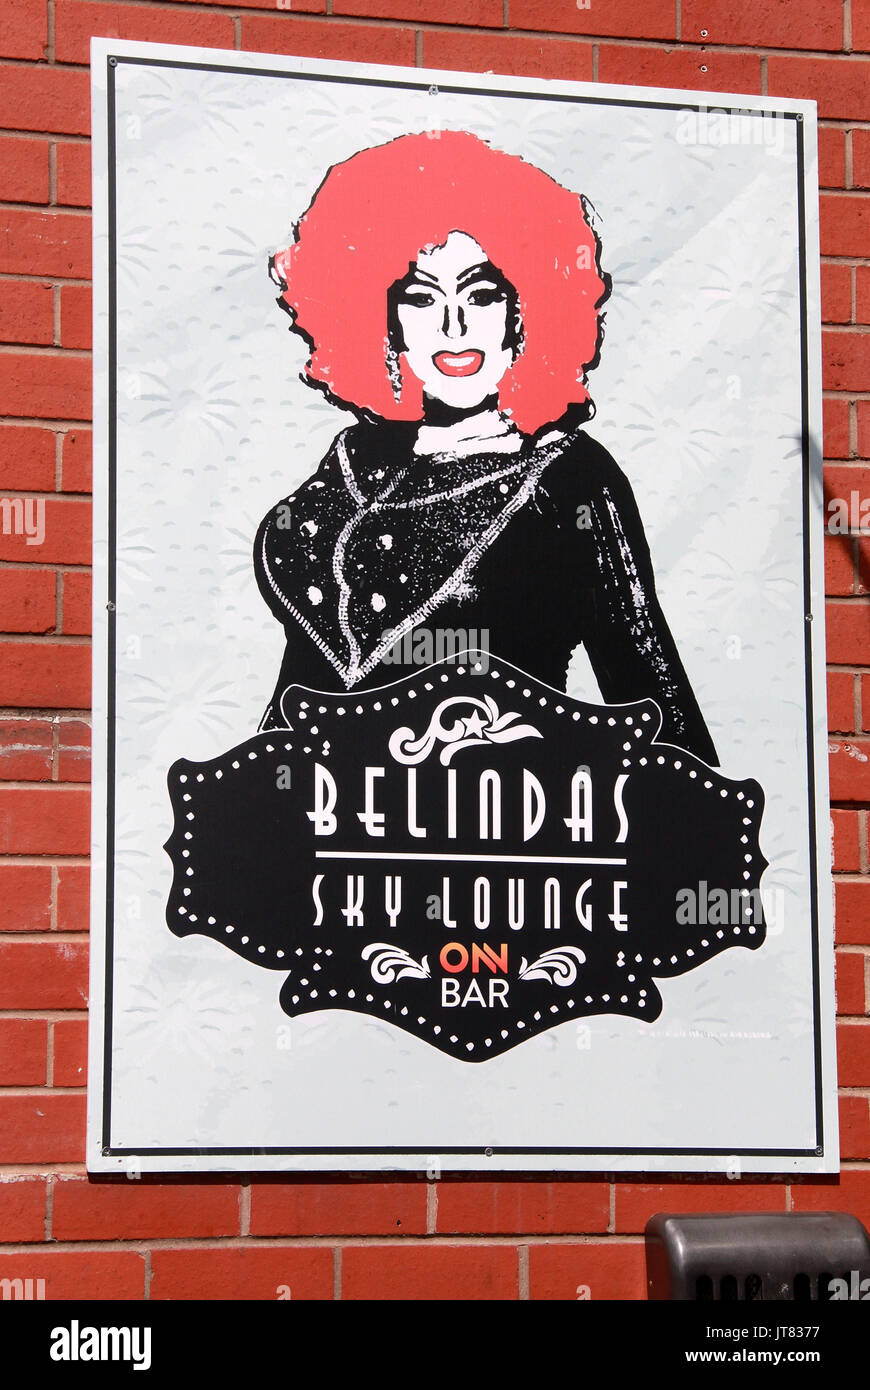 Belindas Bar sign in Manchesters Gay Village - Stock Image